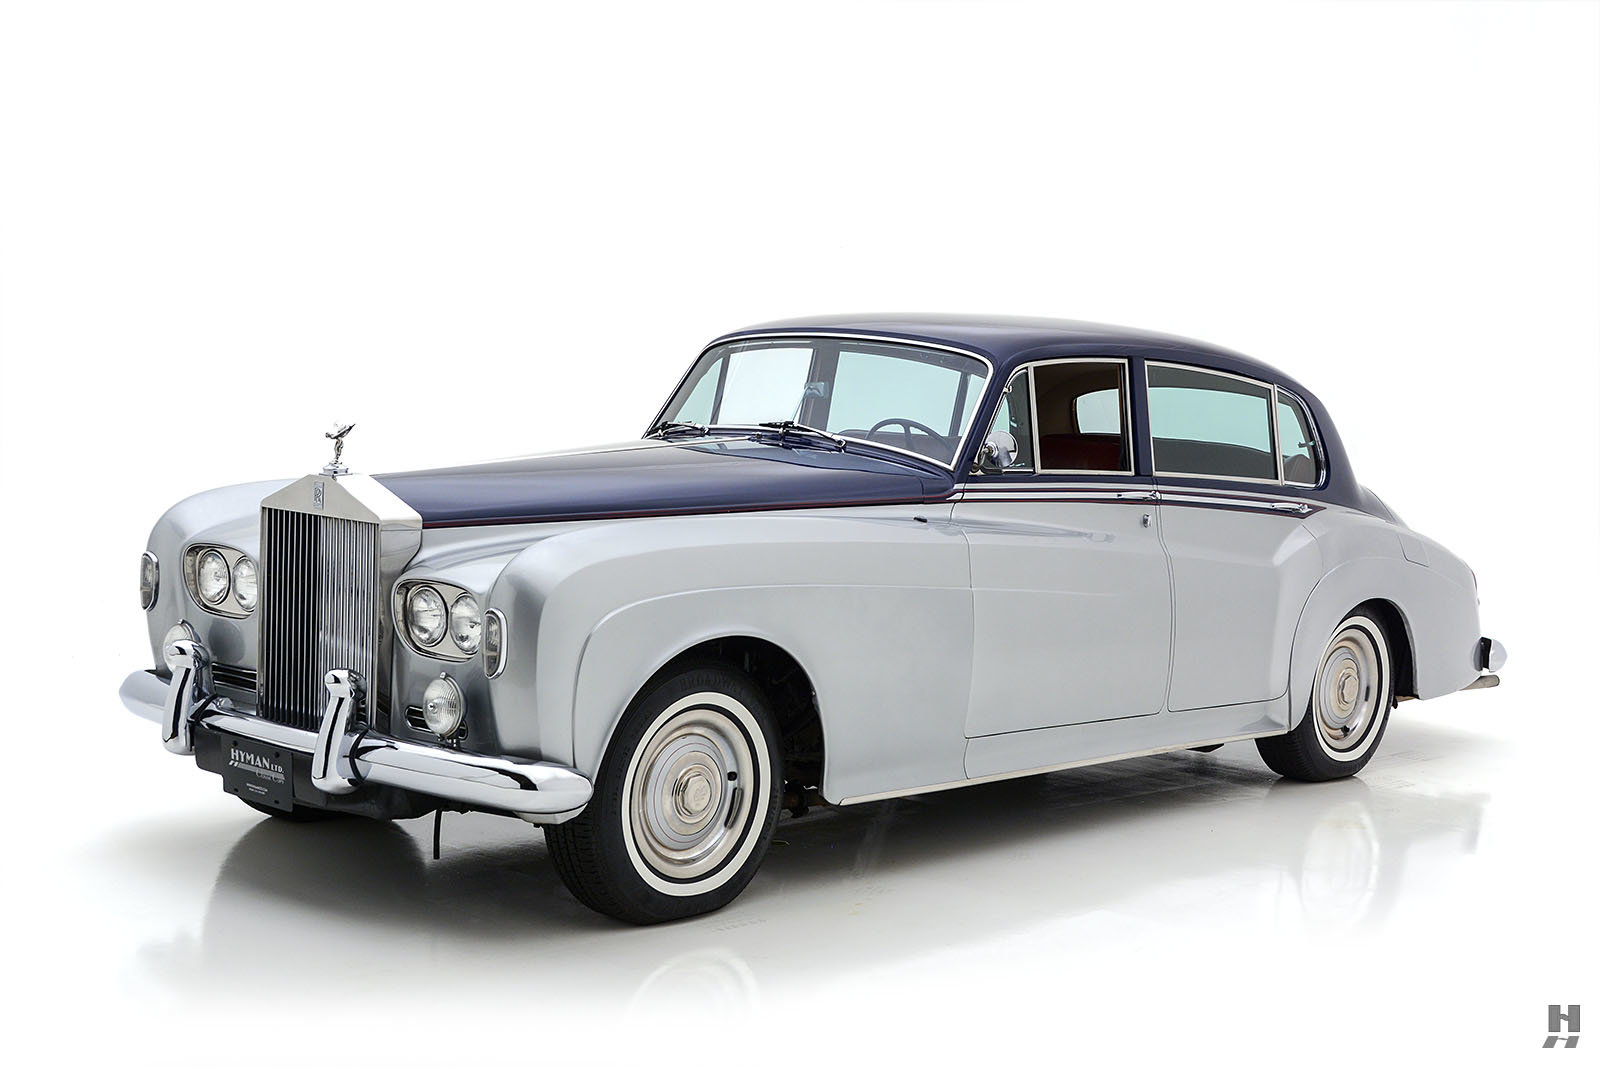 1964 Rolls-Royce Silver Cloud III LWB Saloon For Sale (picture 1 of 6)